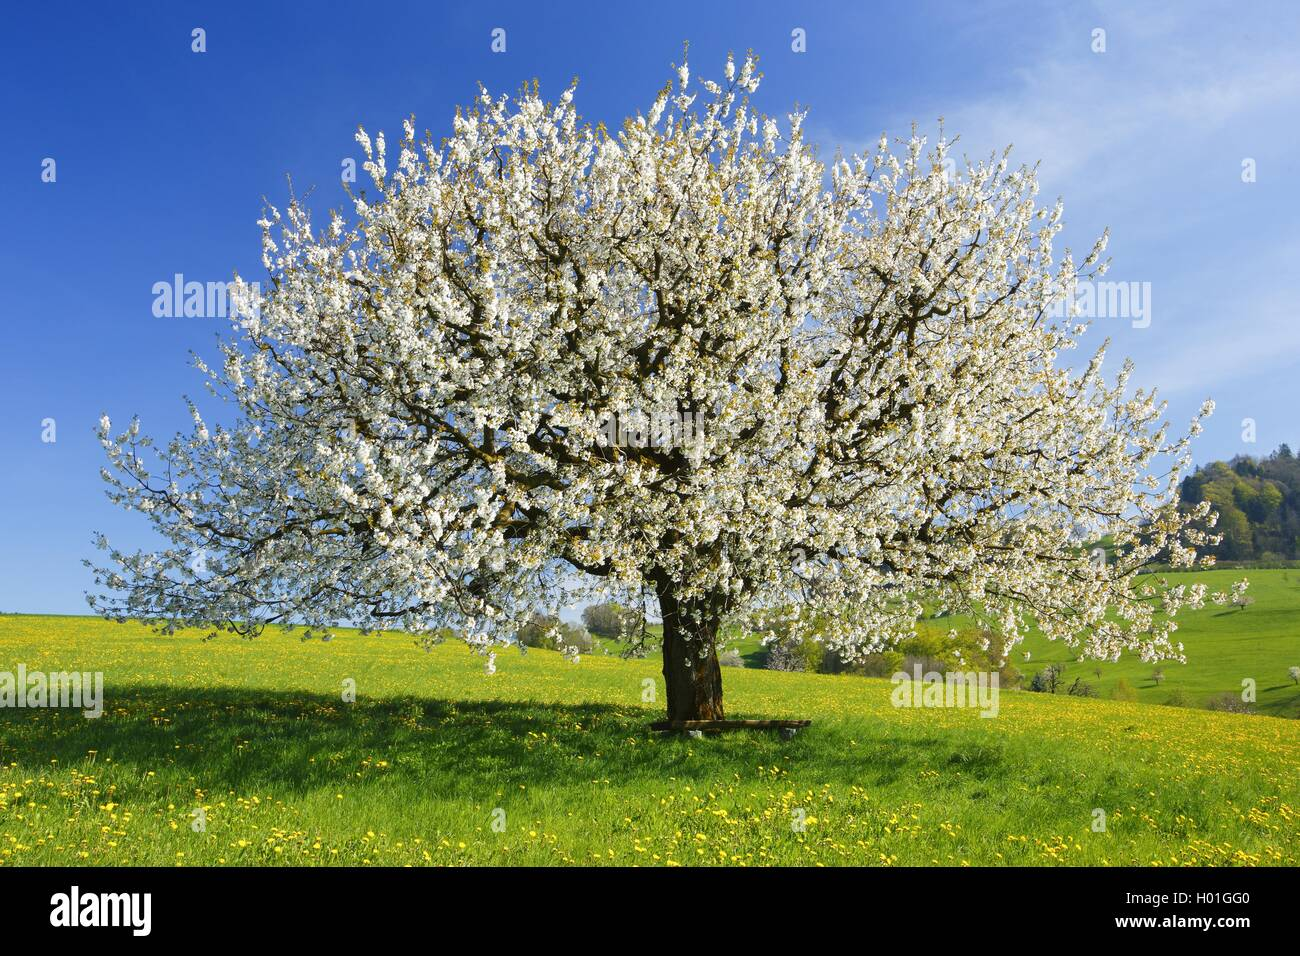 suess kirsche suesskirsche kirschbaum kirsch baum prunus avium stock photo 120507520 alamy. Black Bedroom Furniture Sets. Home Design Ideas